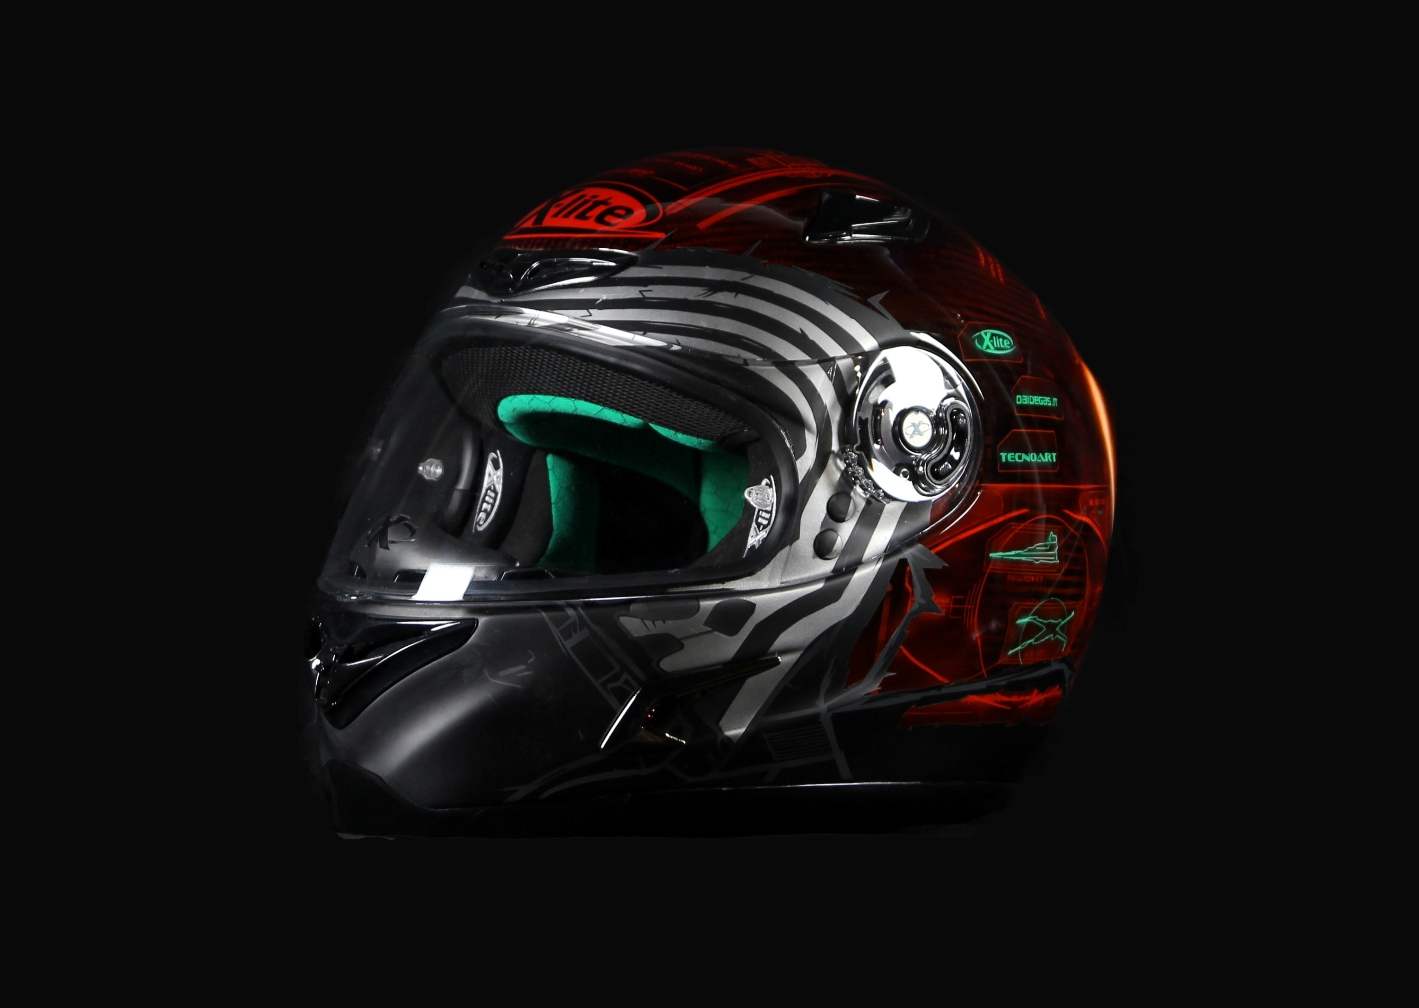 casque x lite x 802 rr replica kylo ren le c t obscur de la force sur votre t te acidmoto. Black Bedroom Furniture Sets. Home Design Ideas